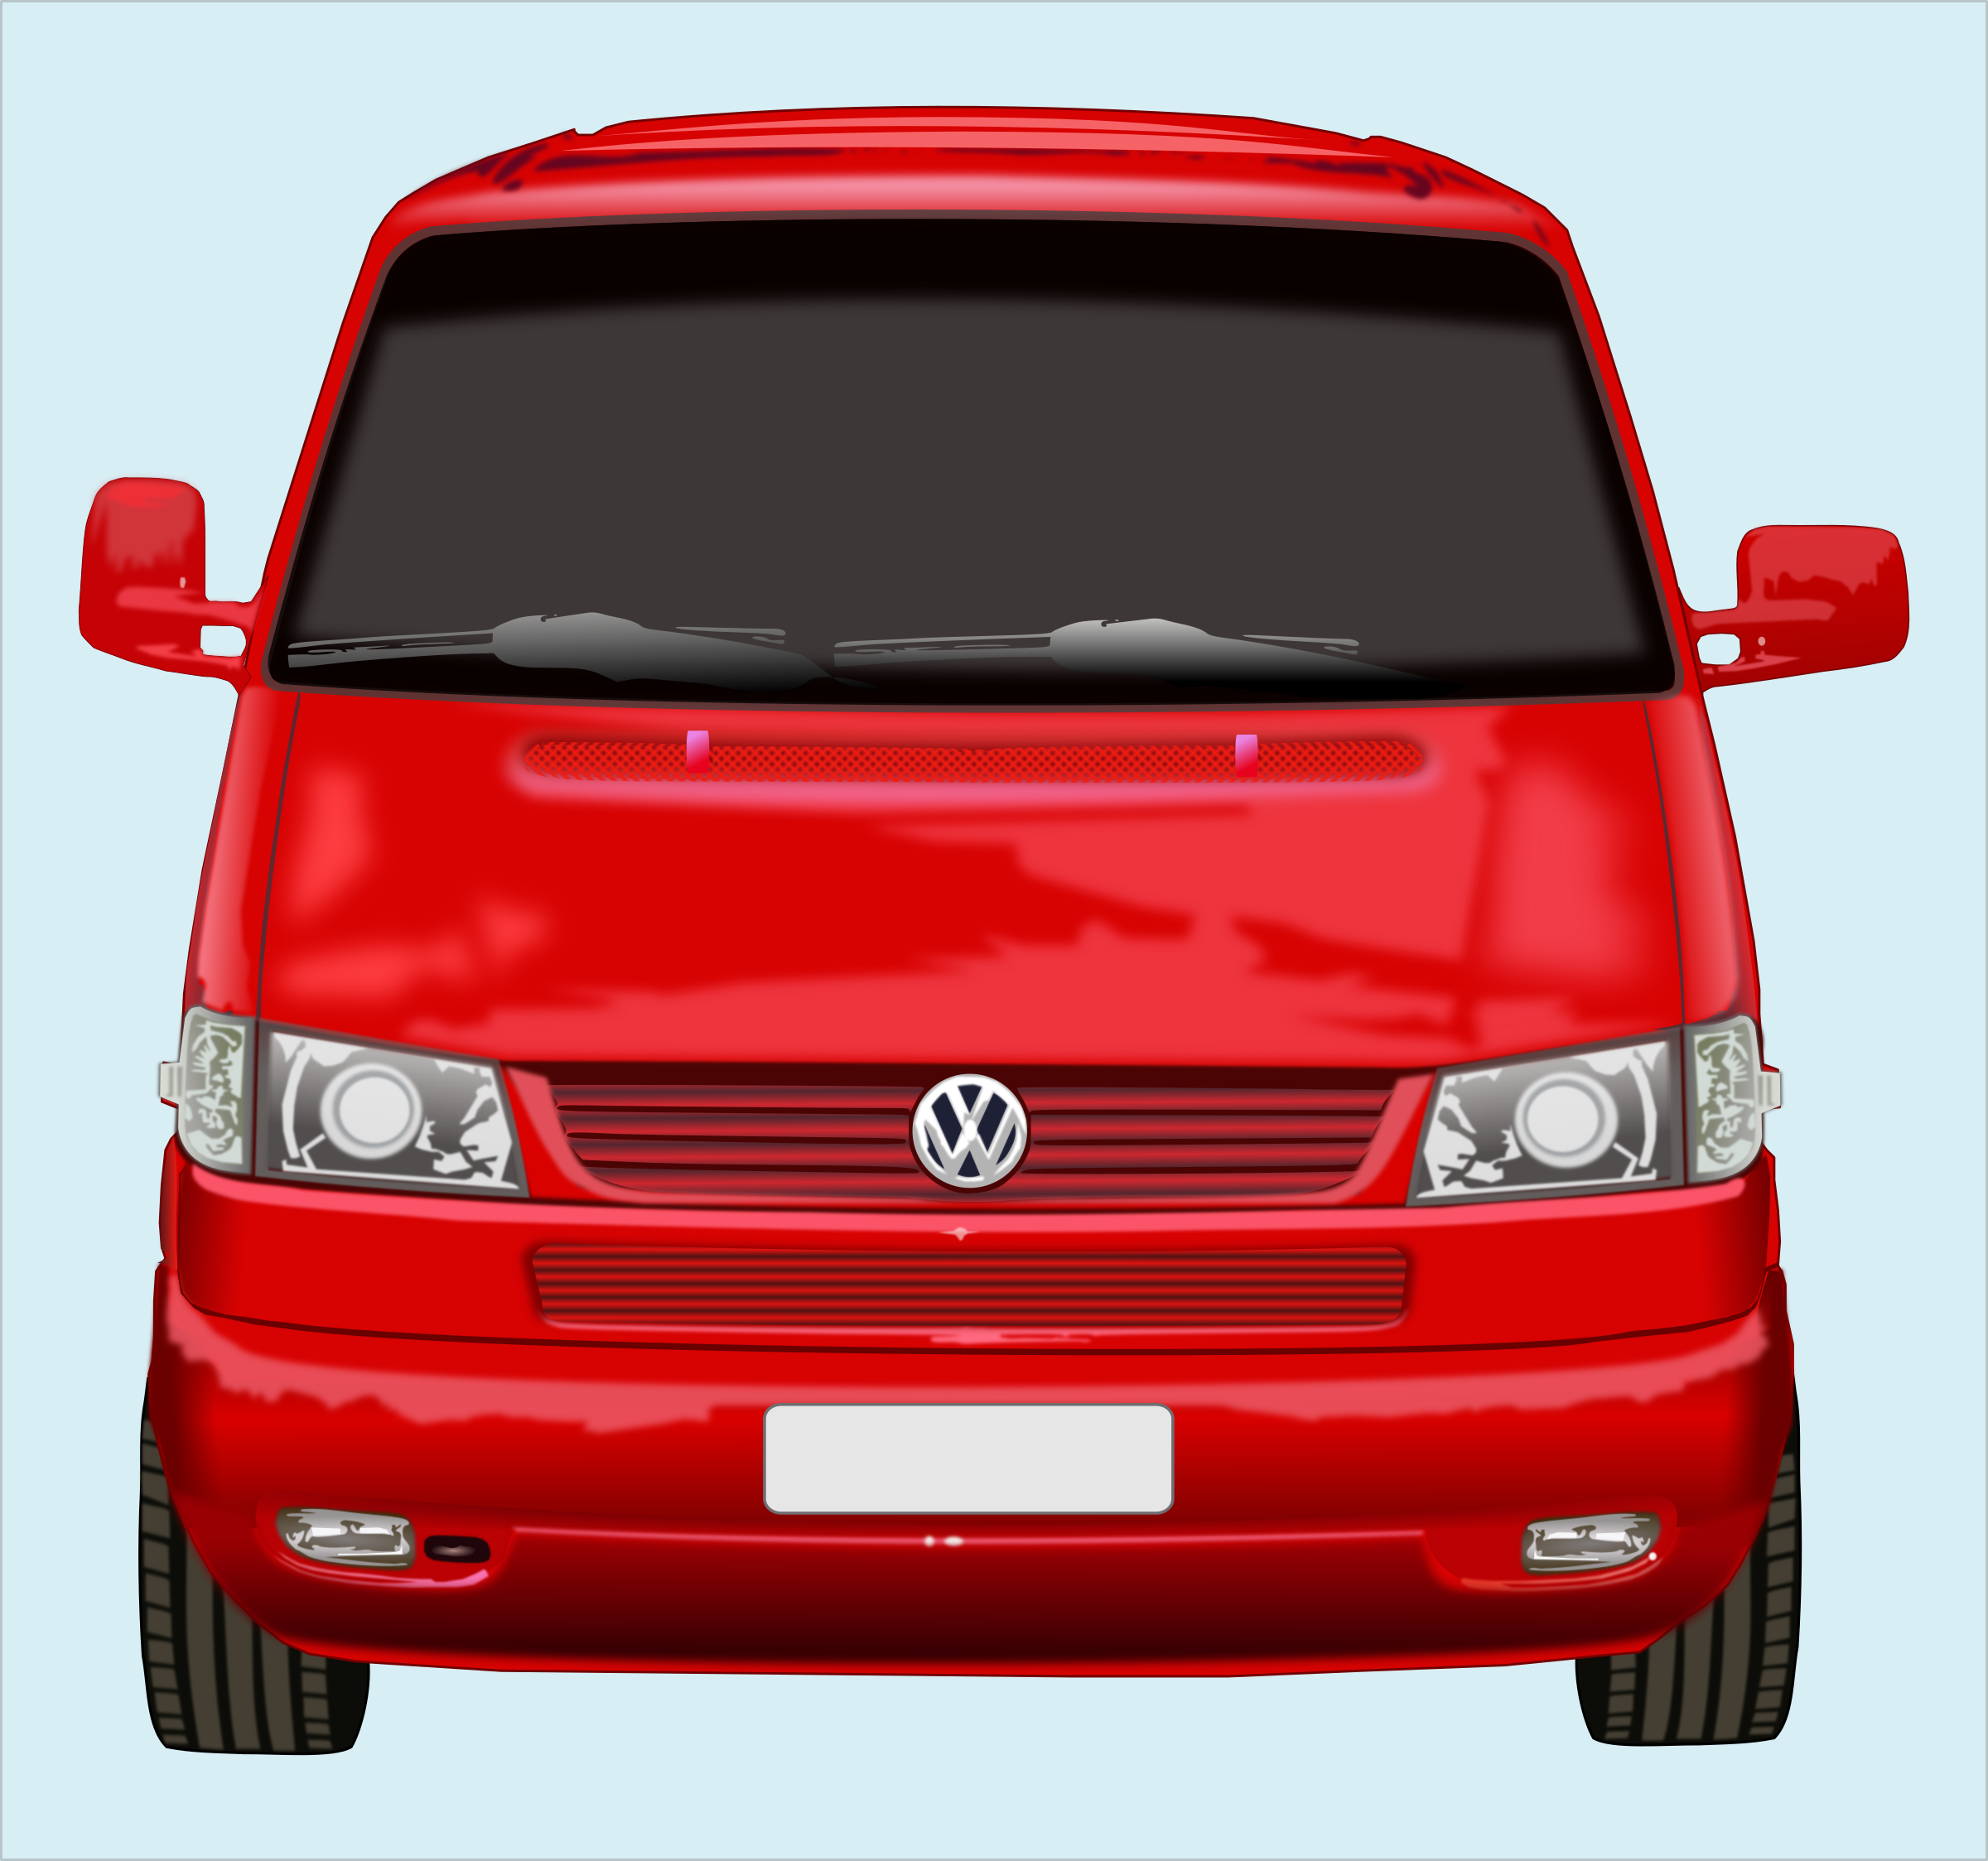 Roter VW-Bus by marauder